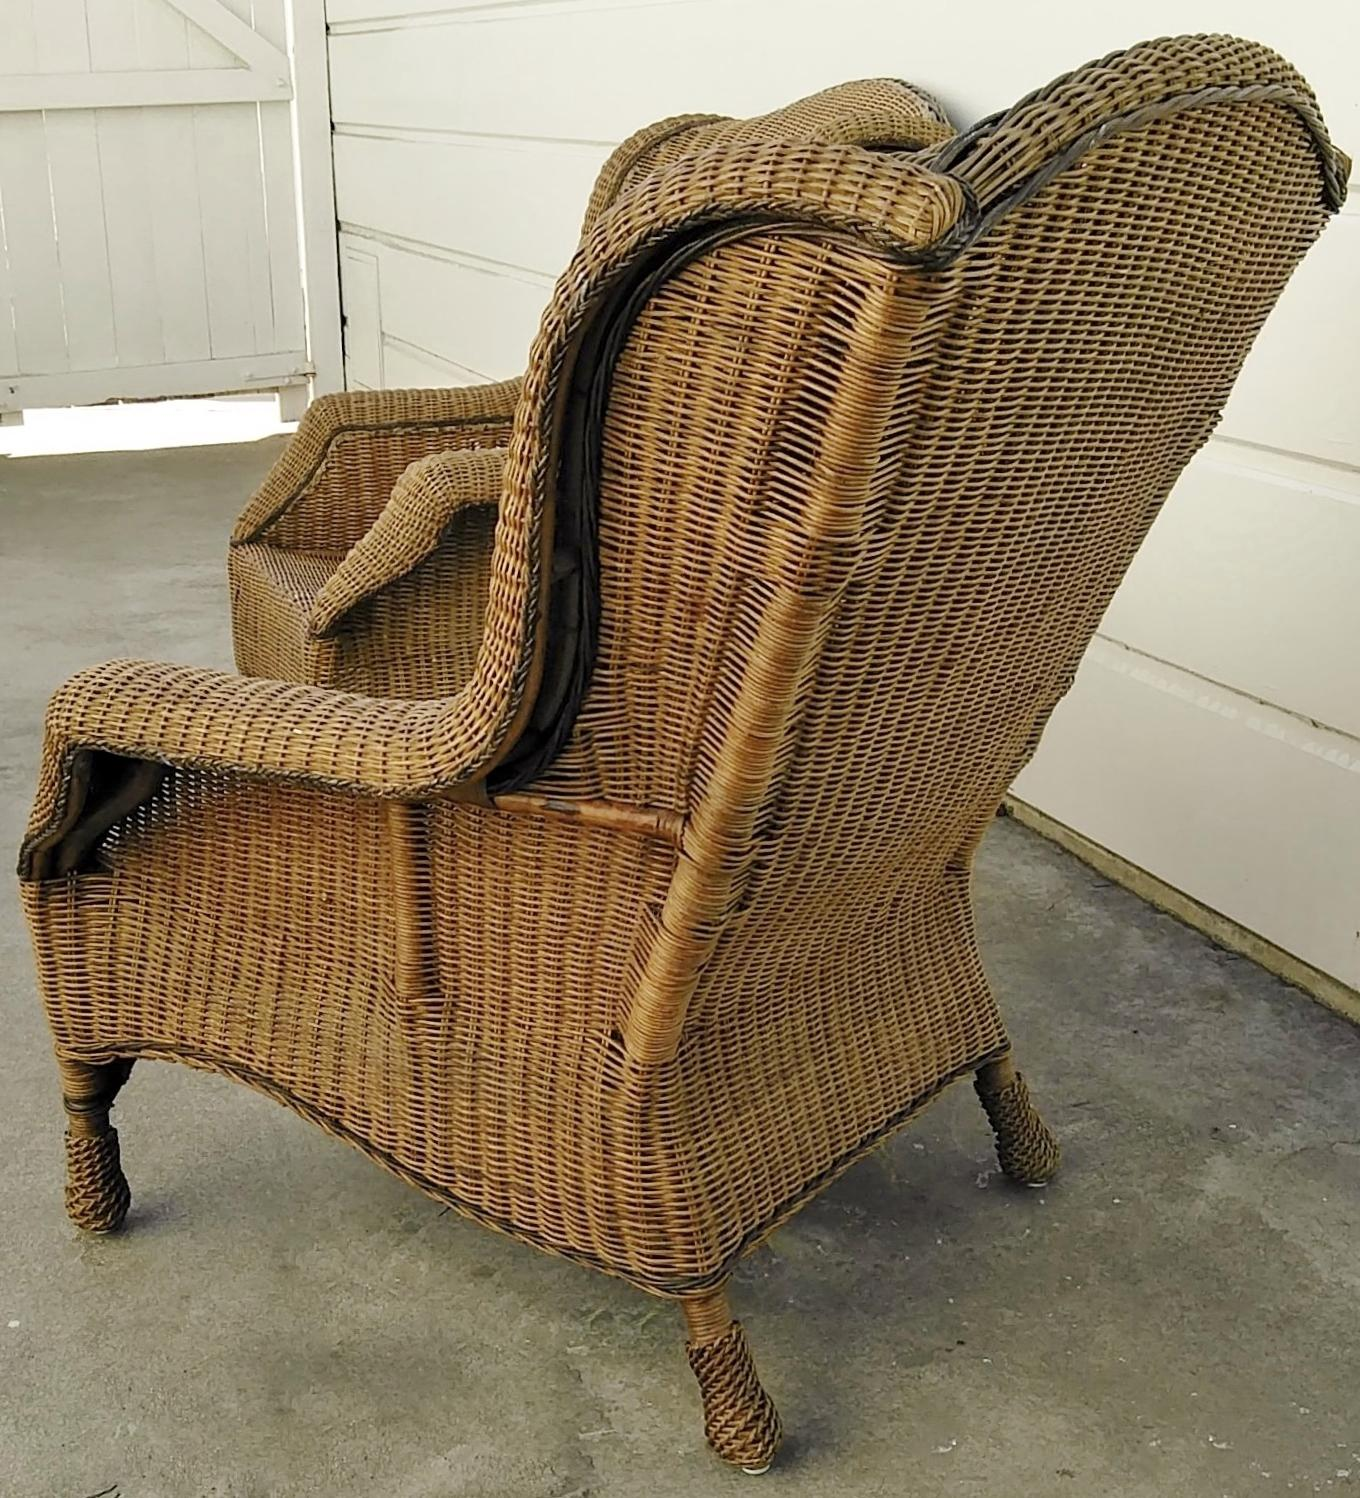 Merveilleux Campaign Pair Lg Vintage Ralph Lauren Wicker Chairs For Sale   Image 3 Of 9